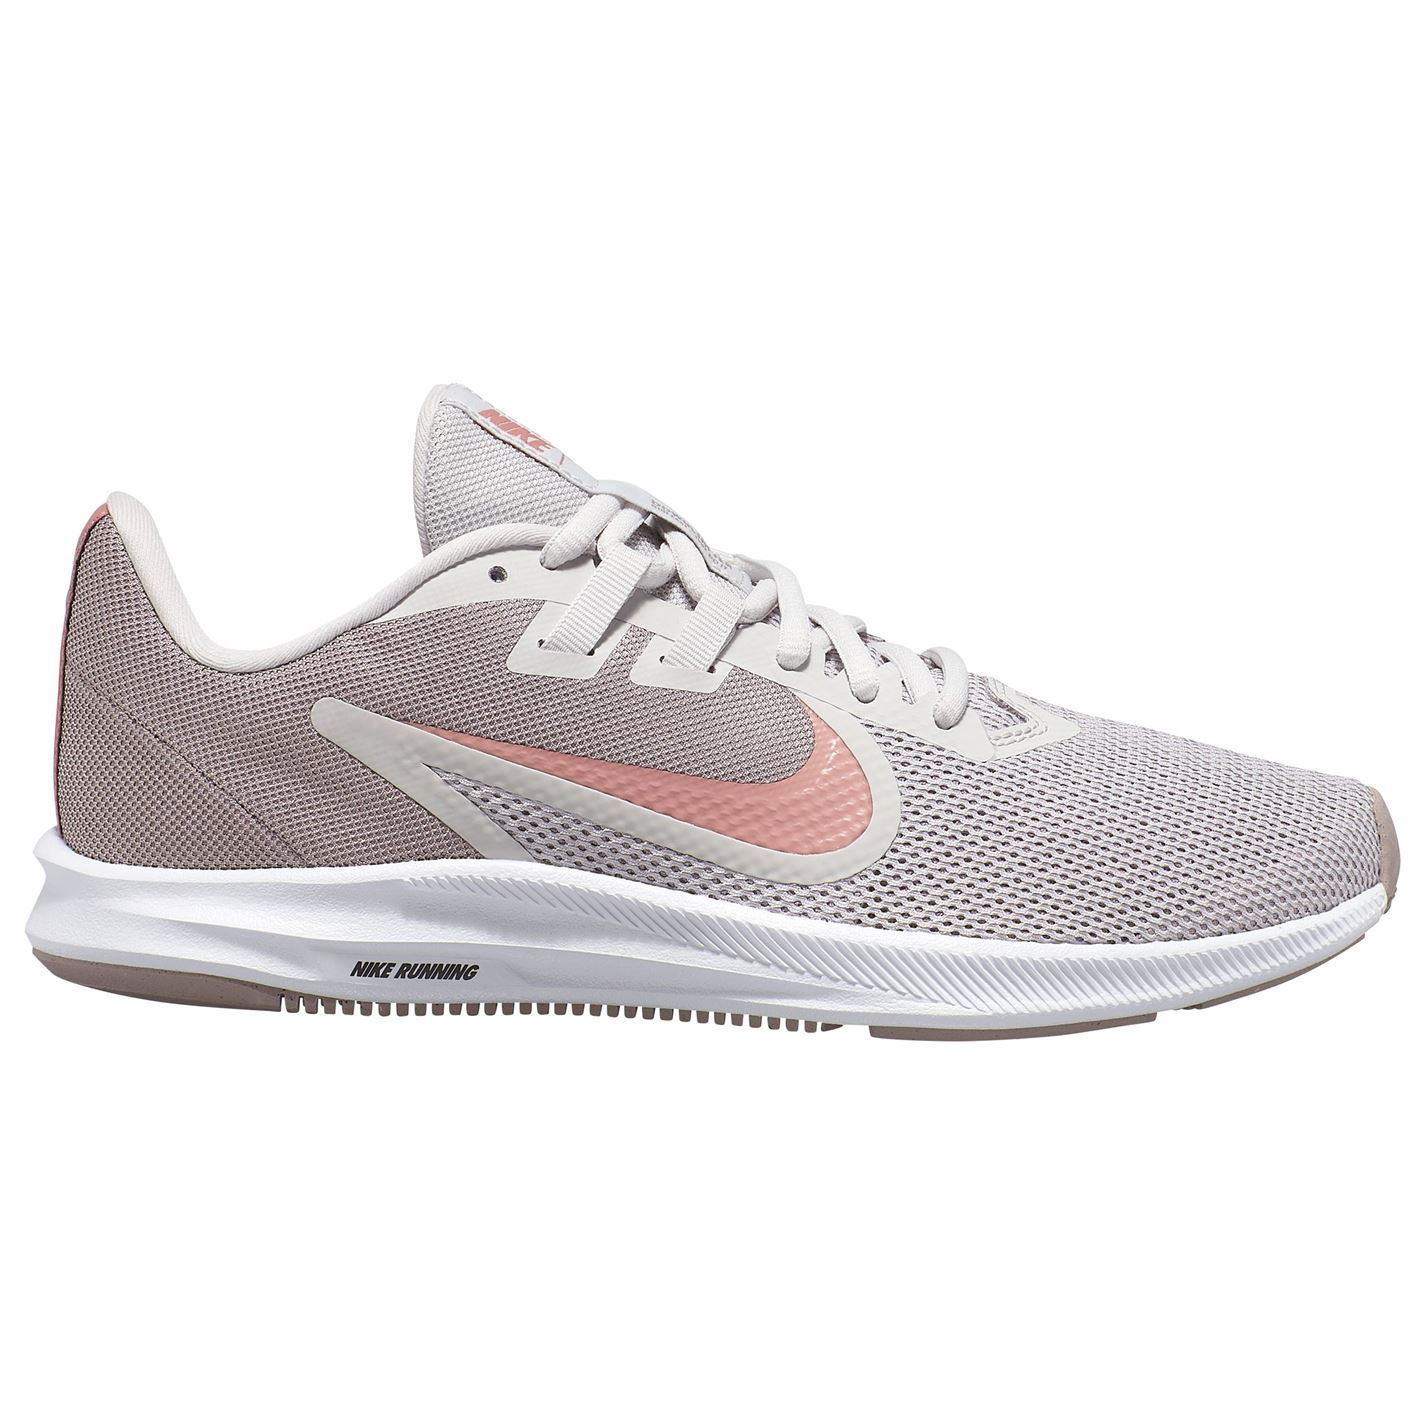 Nike Downshifter 9 Trainers Womens